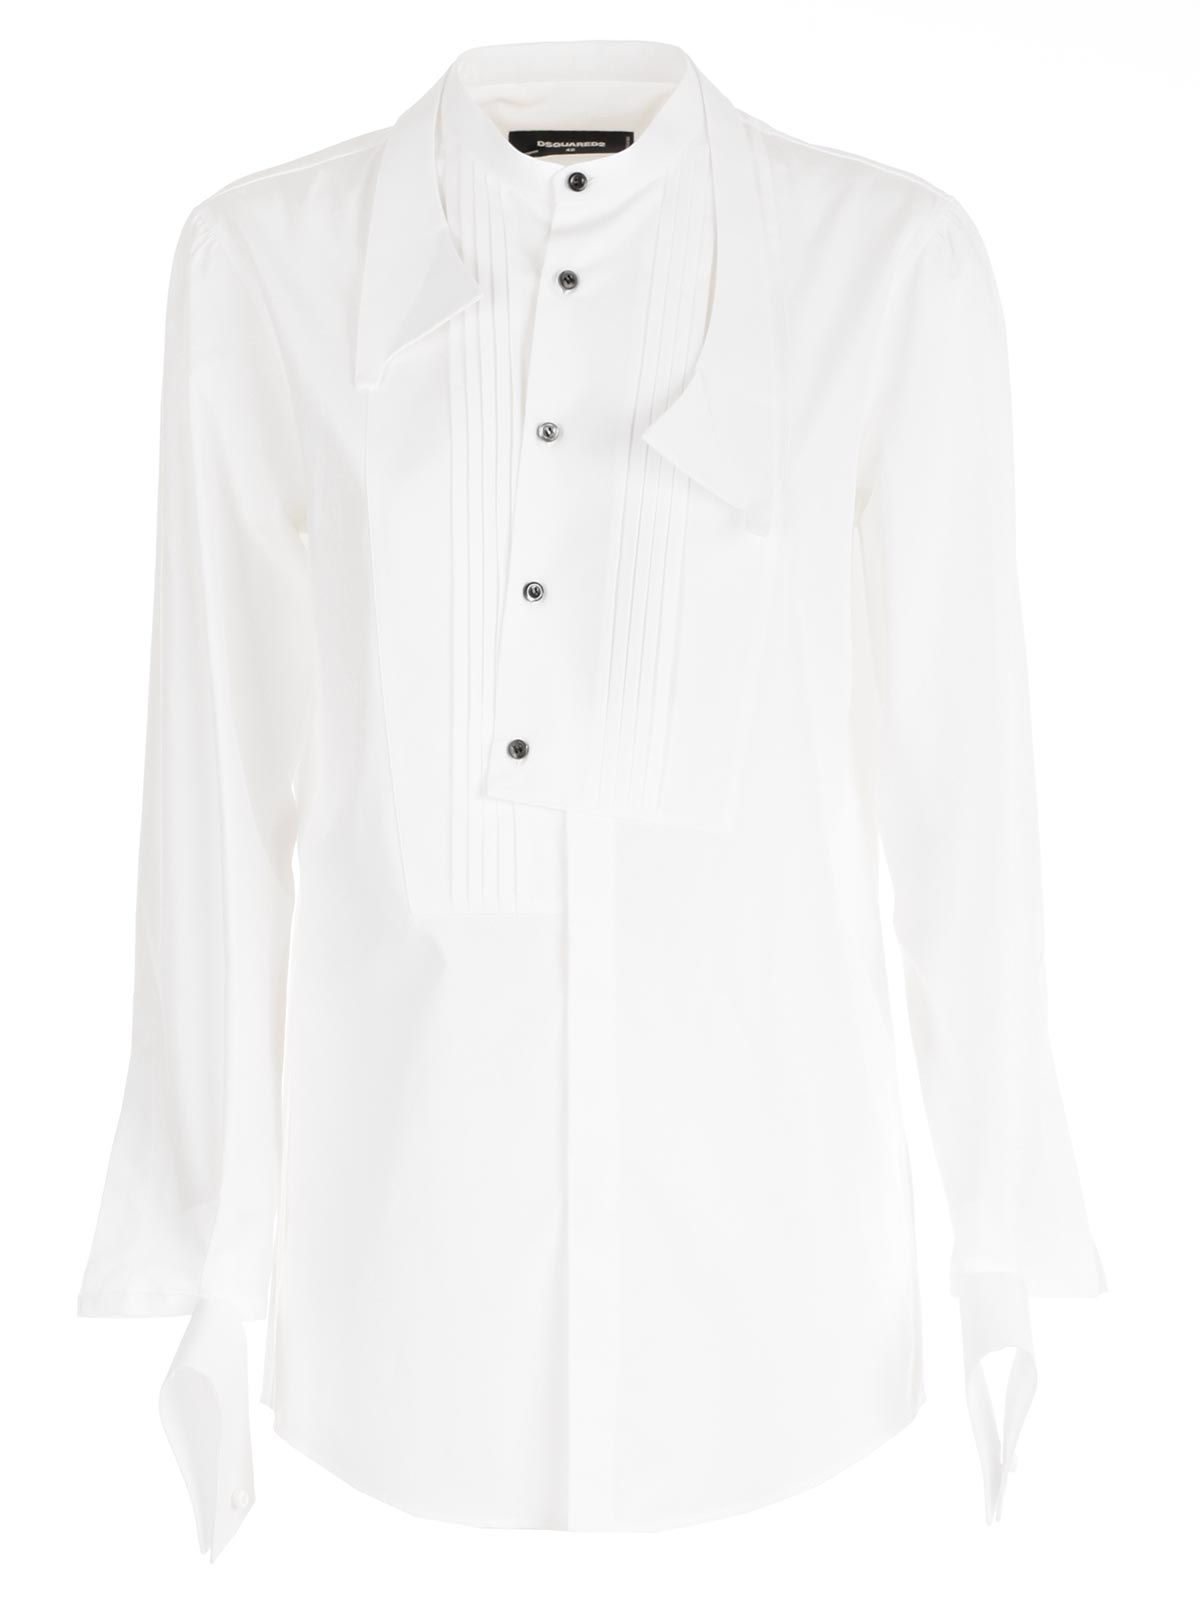 Picture of DSQUARED2 SHIRTS CAMICIA